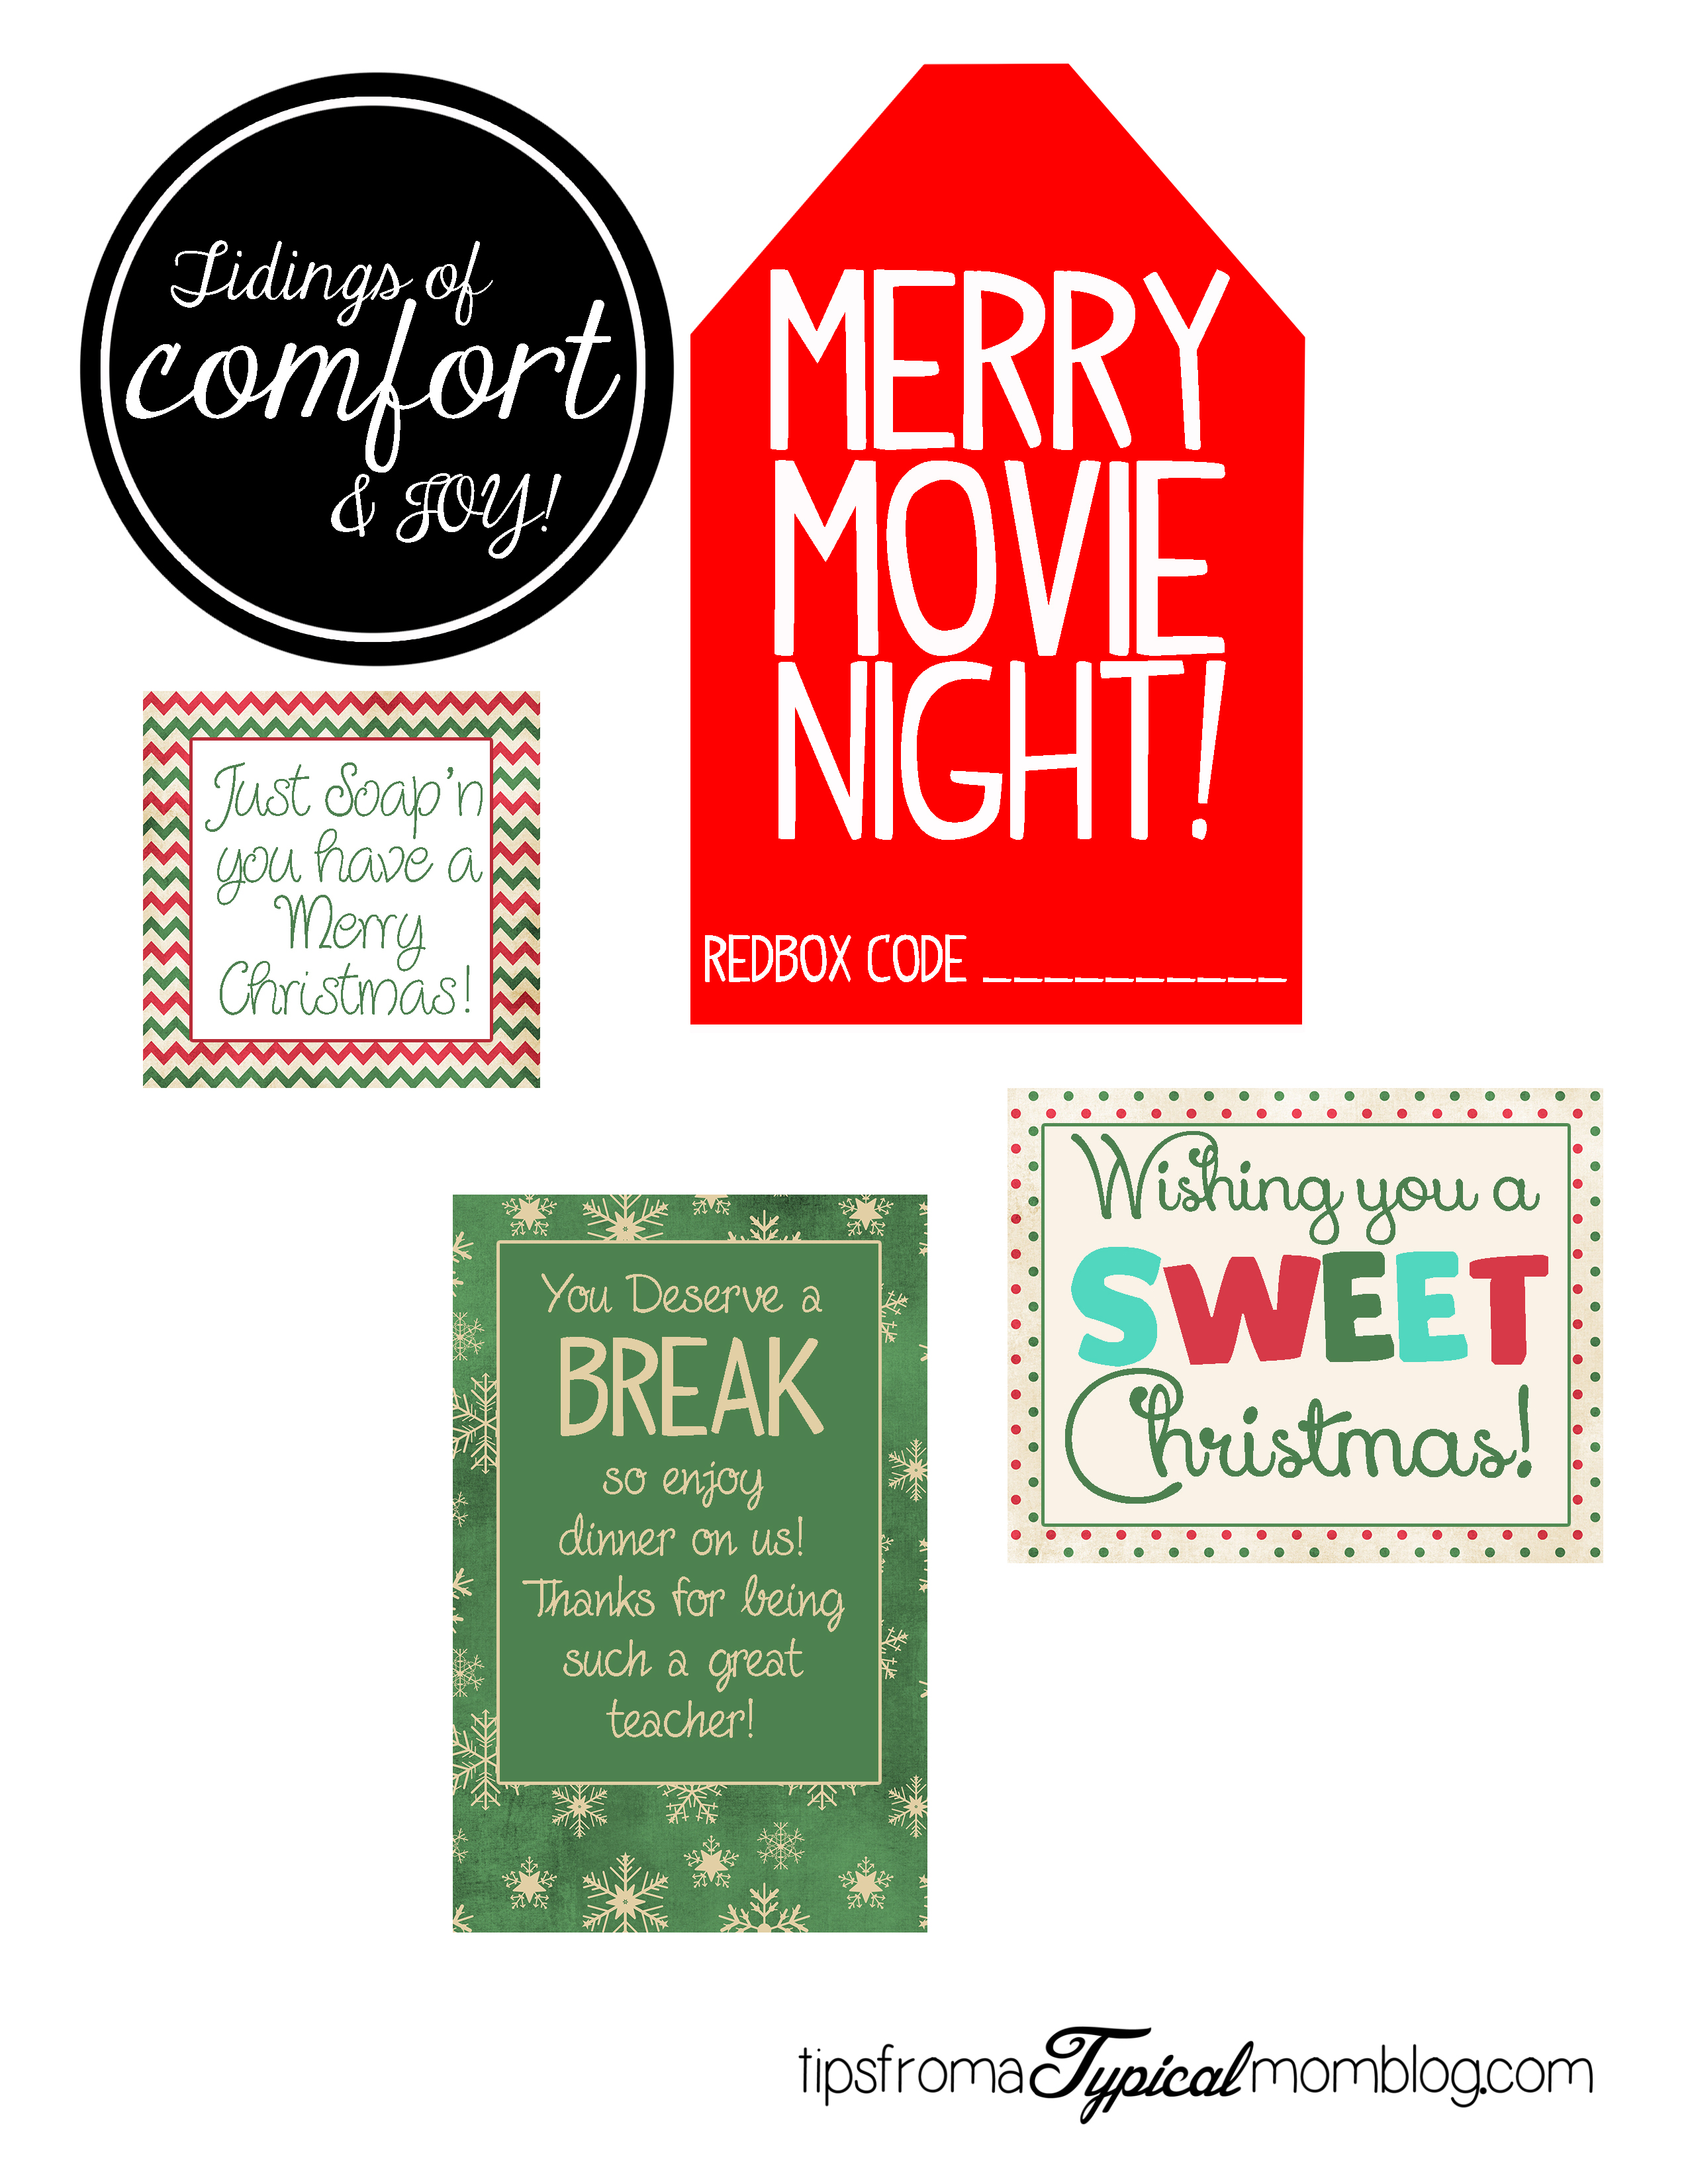 photograph relating to You Deserve a Break Printable called 8 Simple and Straightforward Trainer Xmas Reward Suggestions with Printable